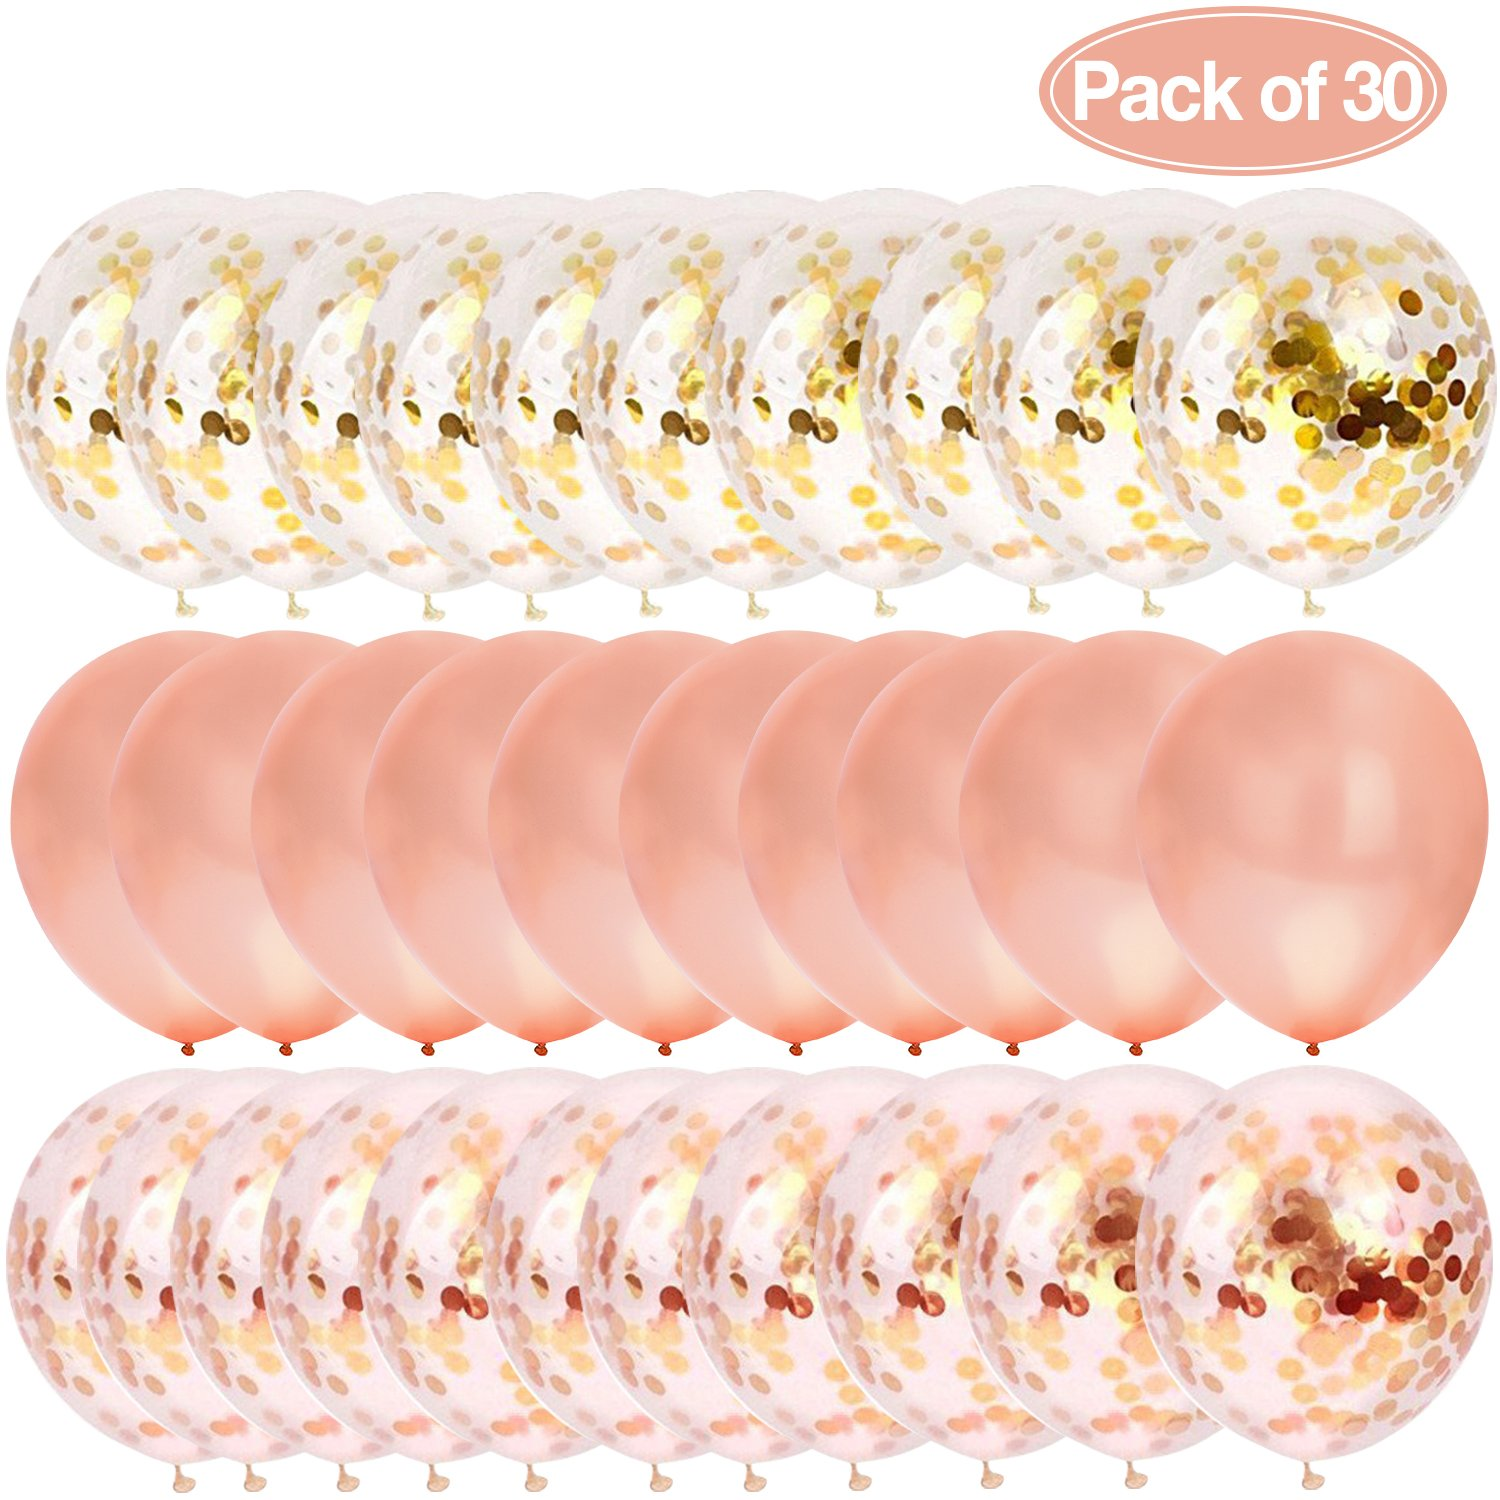 AOSTAR 30Pcs Clear Balloons Rose Gold Confetti Dots 12 Latex Birthday Party, Wedding, Bridal Baby Shower and Holidays (30 Piece)